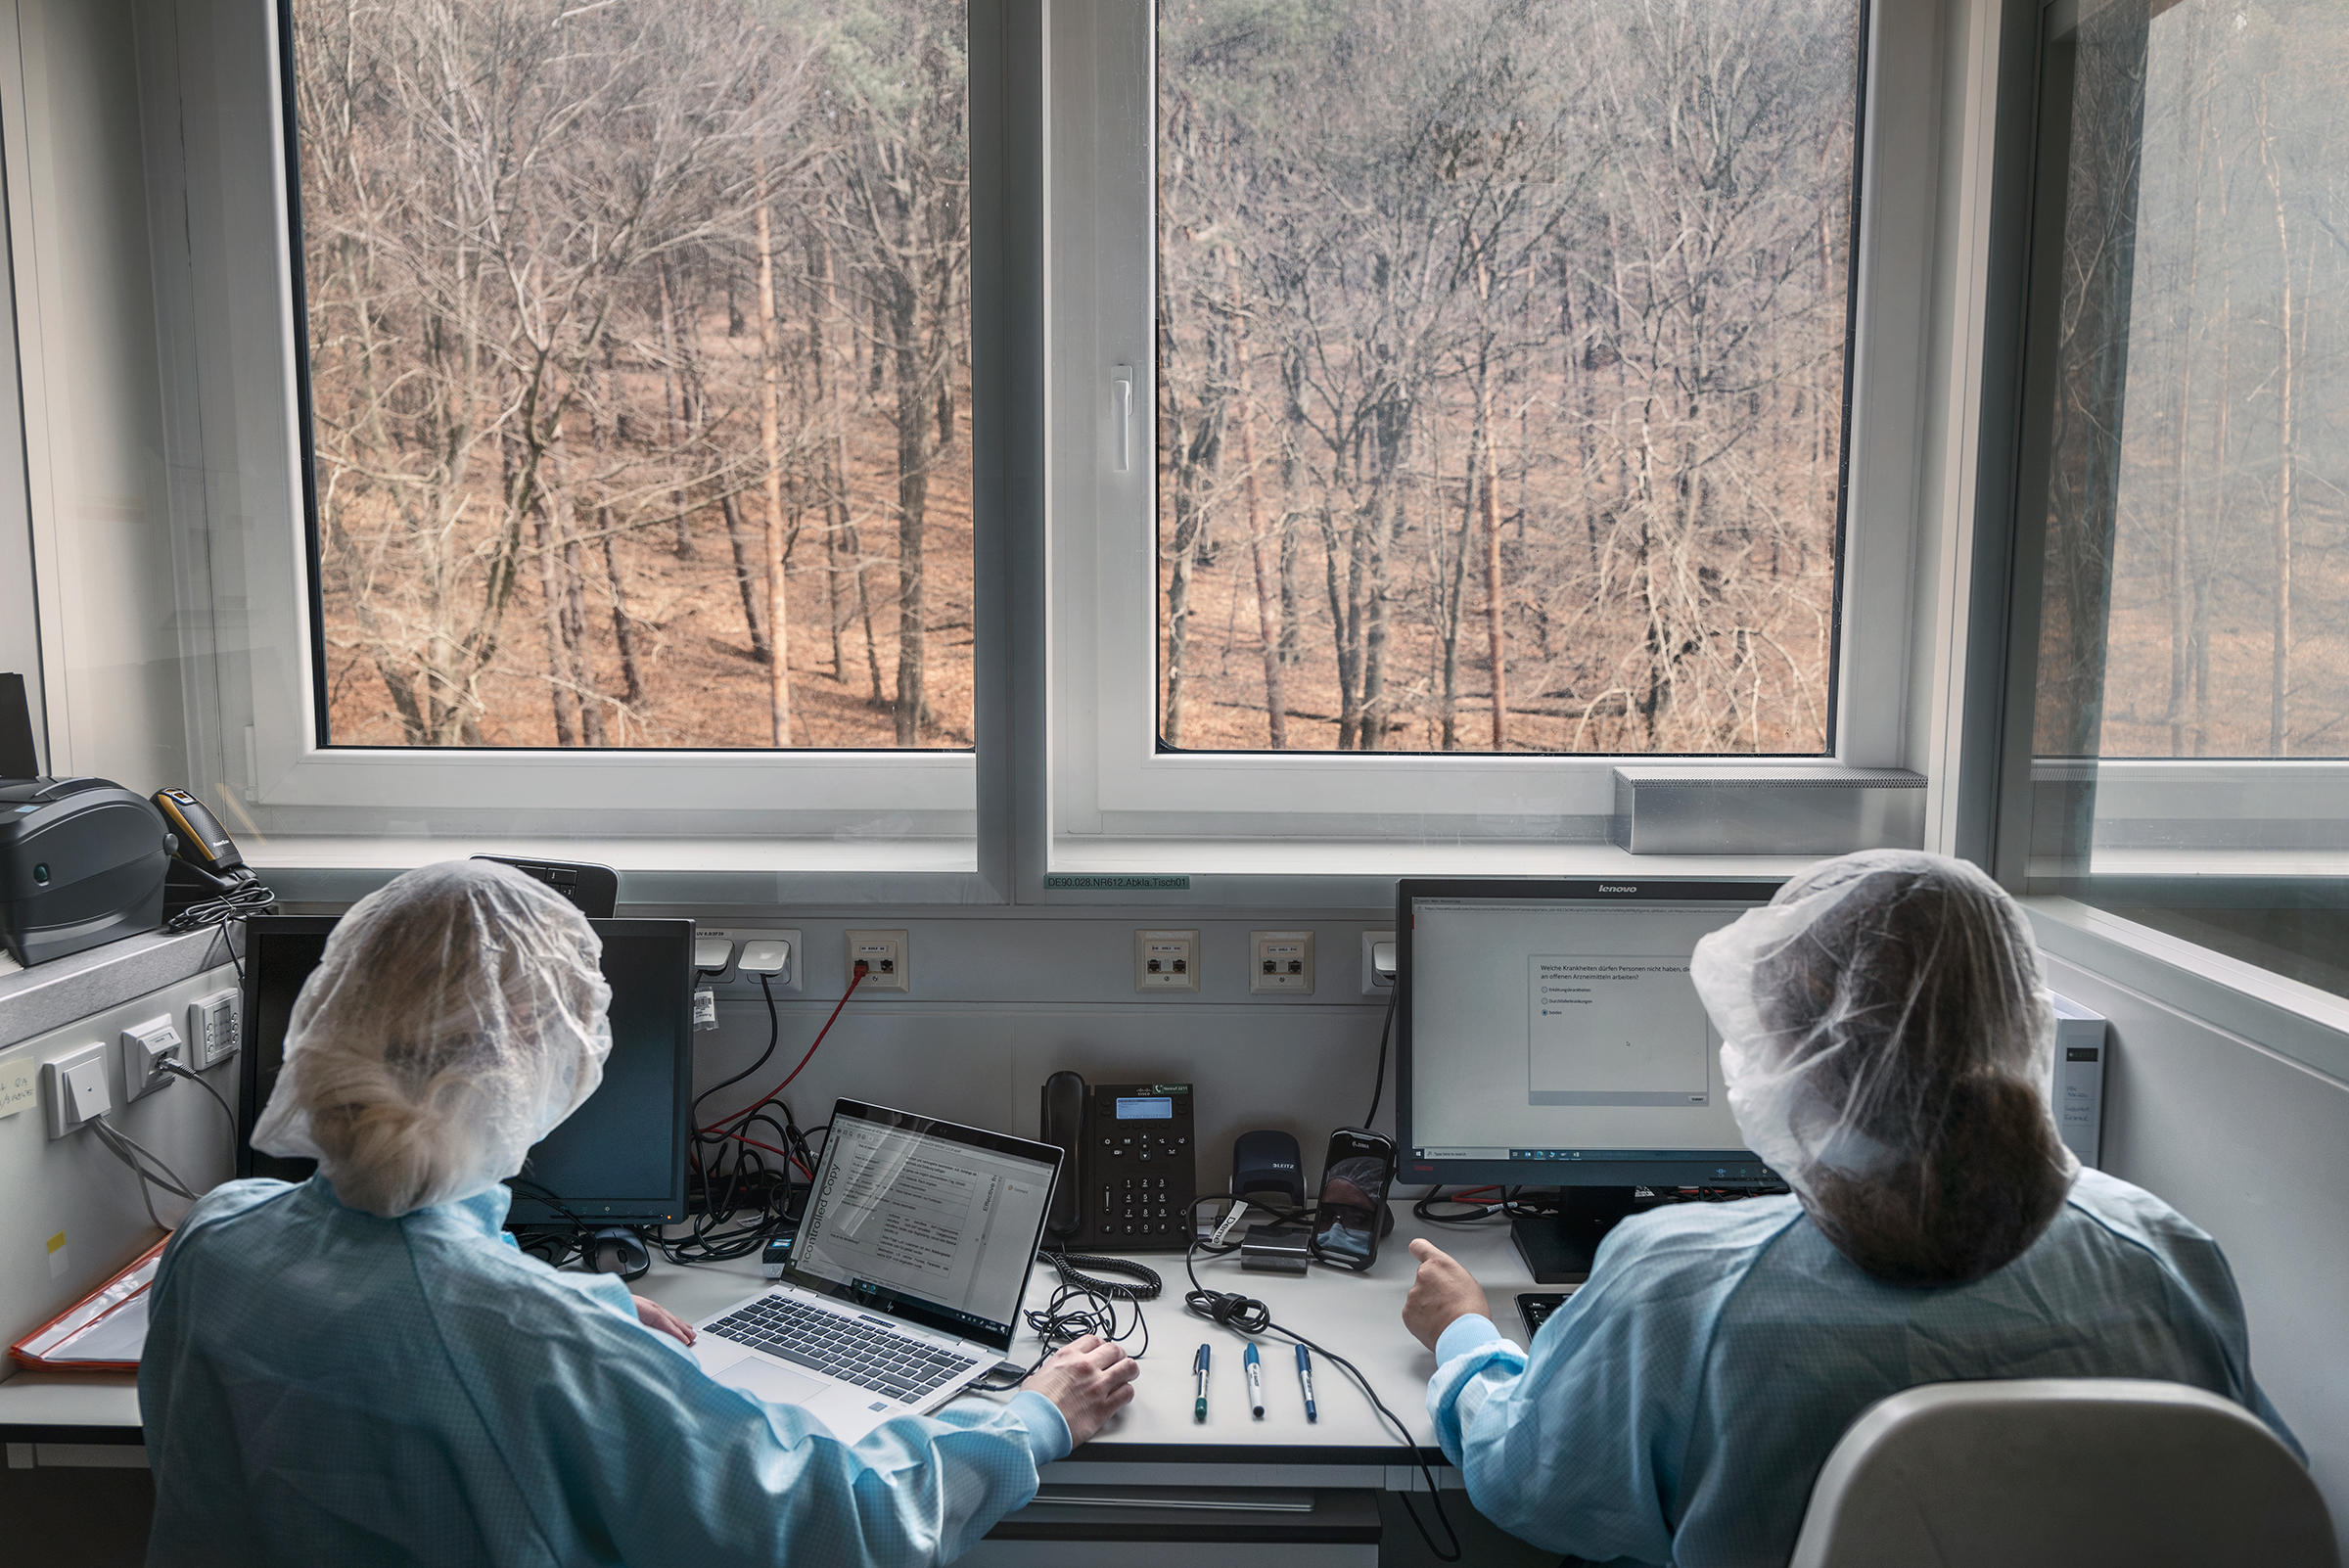 The new BioNTech production facility is in a wooded valley in Marburg. Technicians working in one of the prep labs often spot deer roaming in the nearby forest.